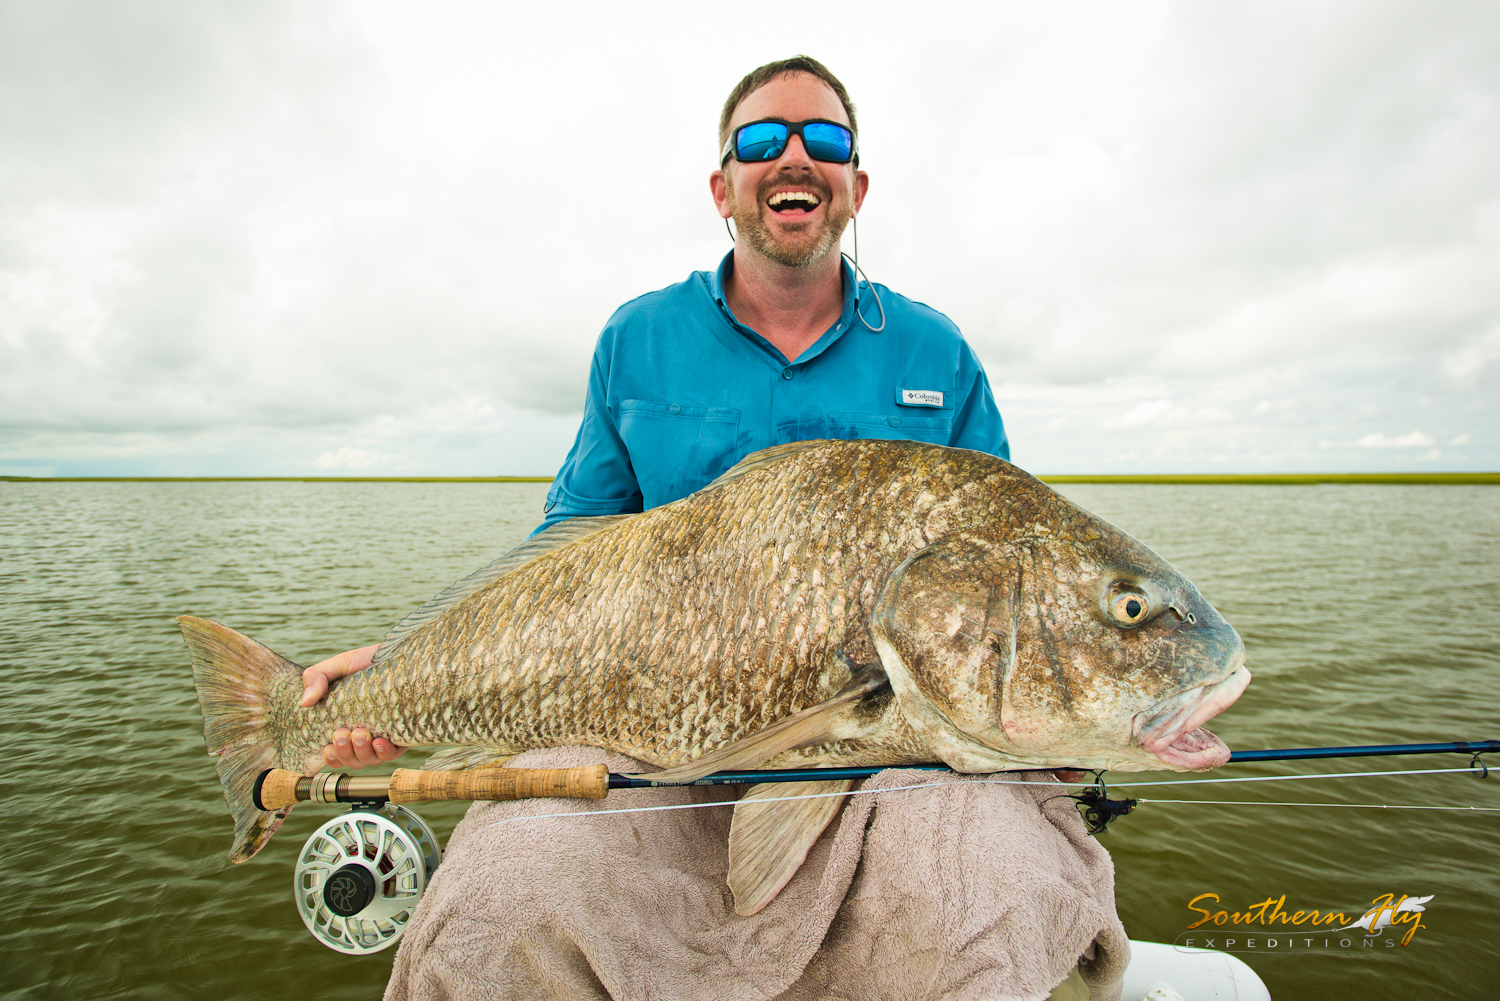 fly fishing in louisiana - when is the best time to fly fishing with southern fly expeditions